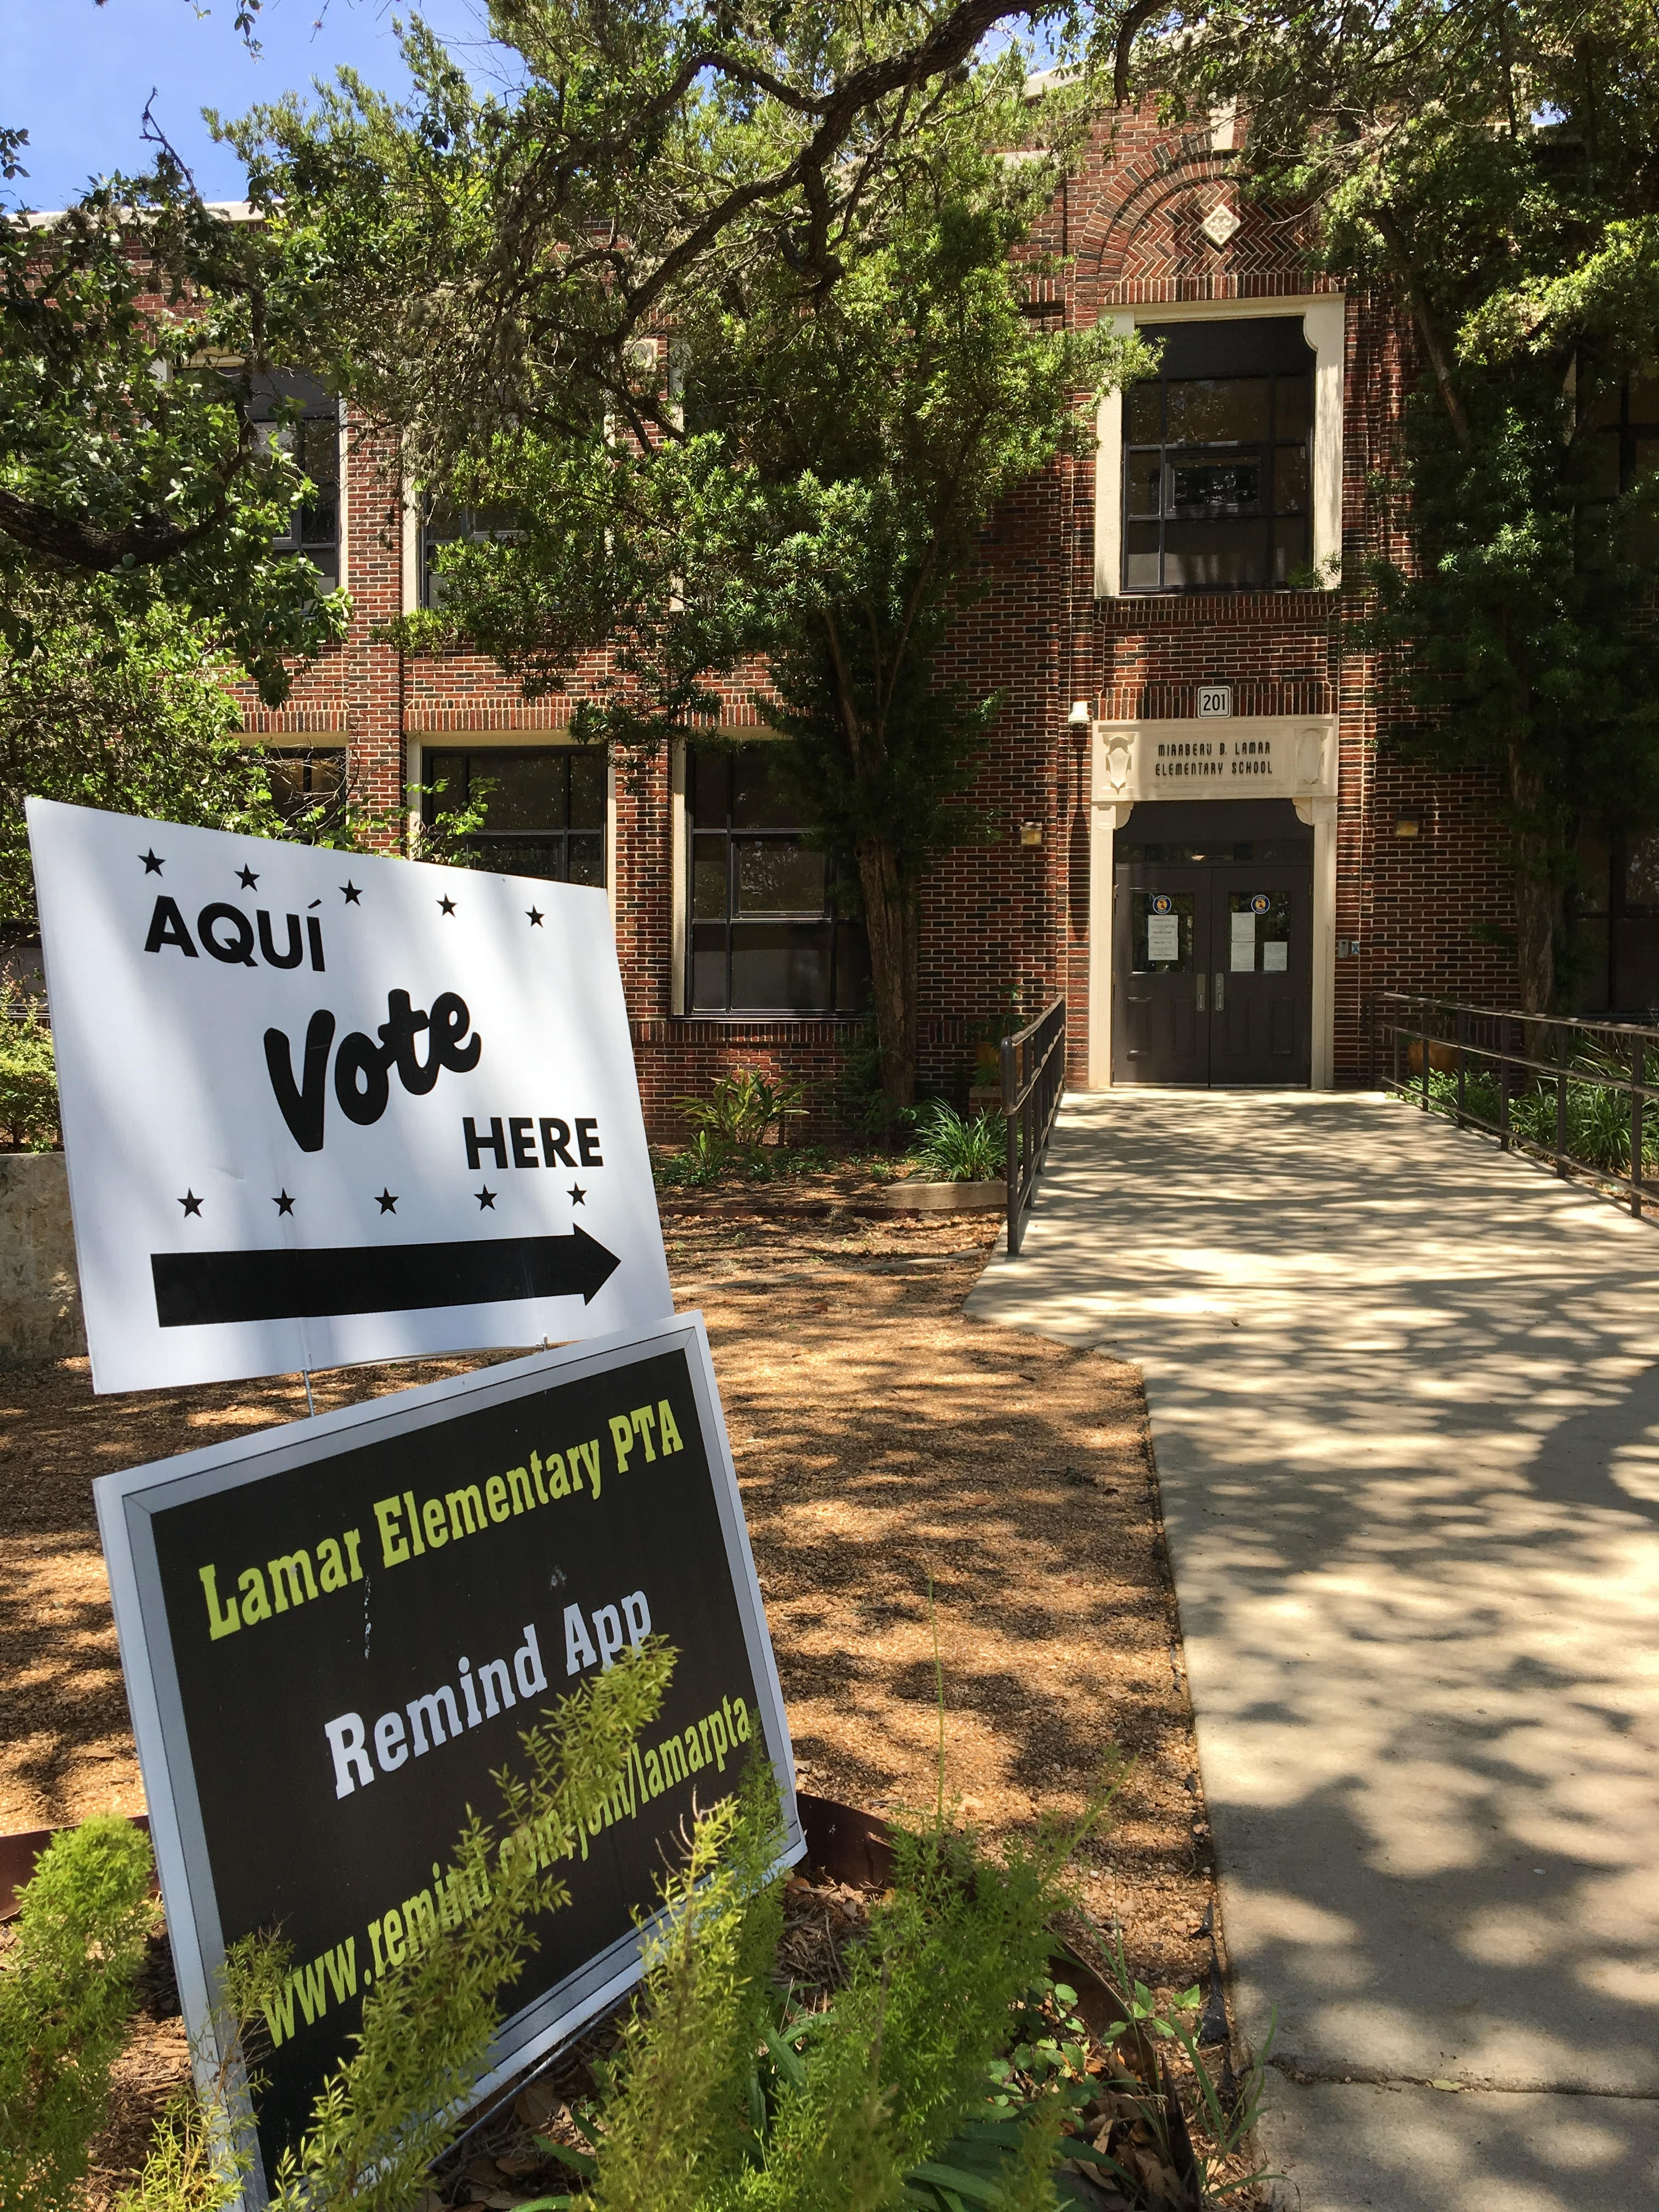 Today\'s Voter Turnout in San Antonio Is Looking Pretty Thin | The Daily